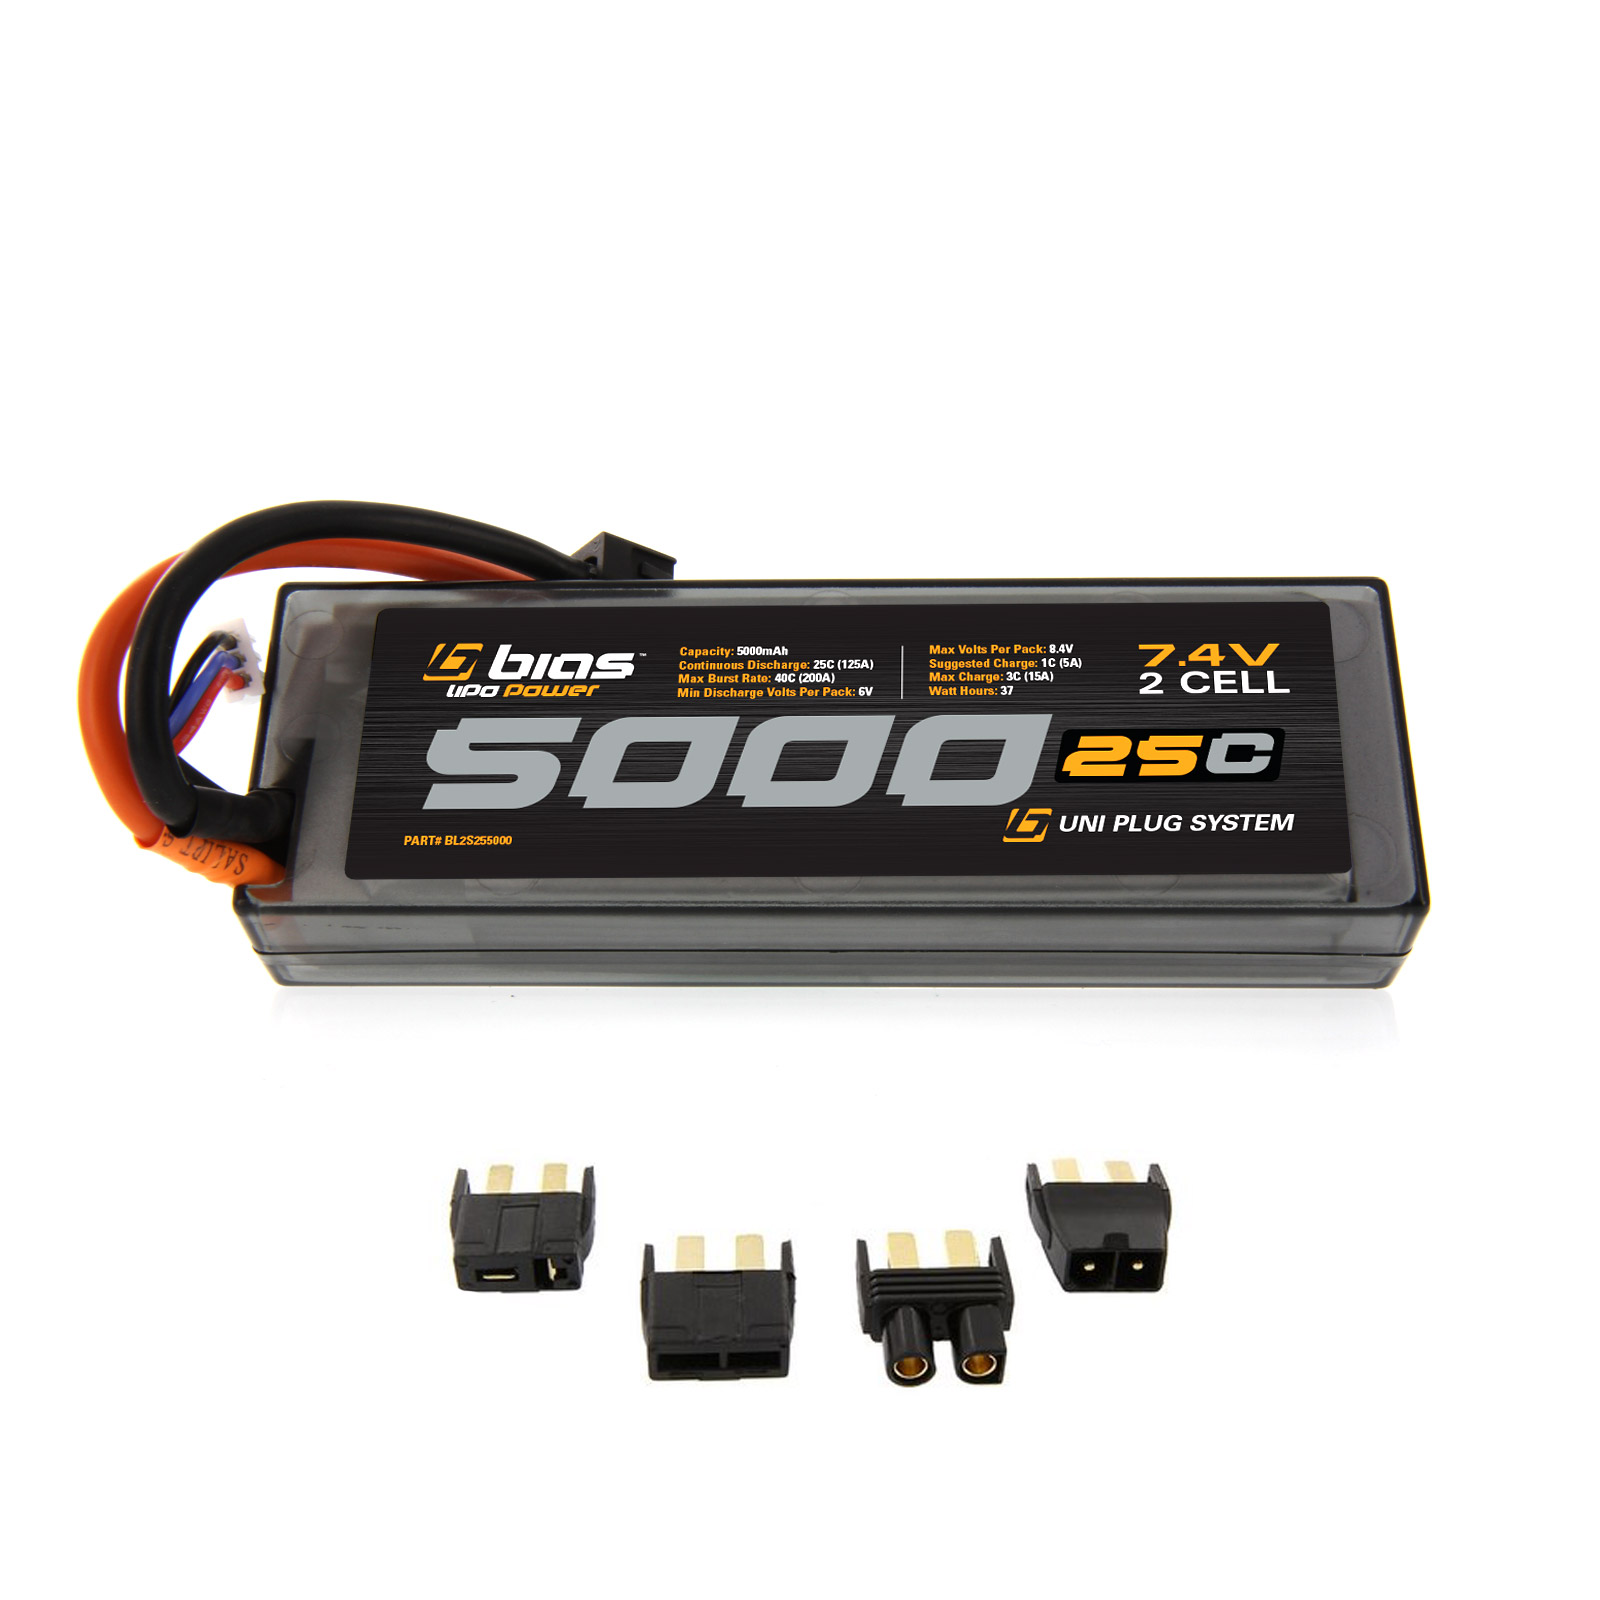 Bias LiPo Battery for Stampede 4x4 25C 2S 5000mAh 7.4V LiPo Hard Case (EC3/Deans/Traxxas/Tamiya Plug) for RC Car, Truck, Buggy, Boat, Heli, and Drone